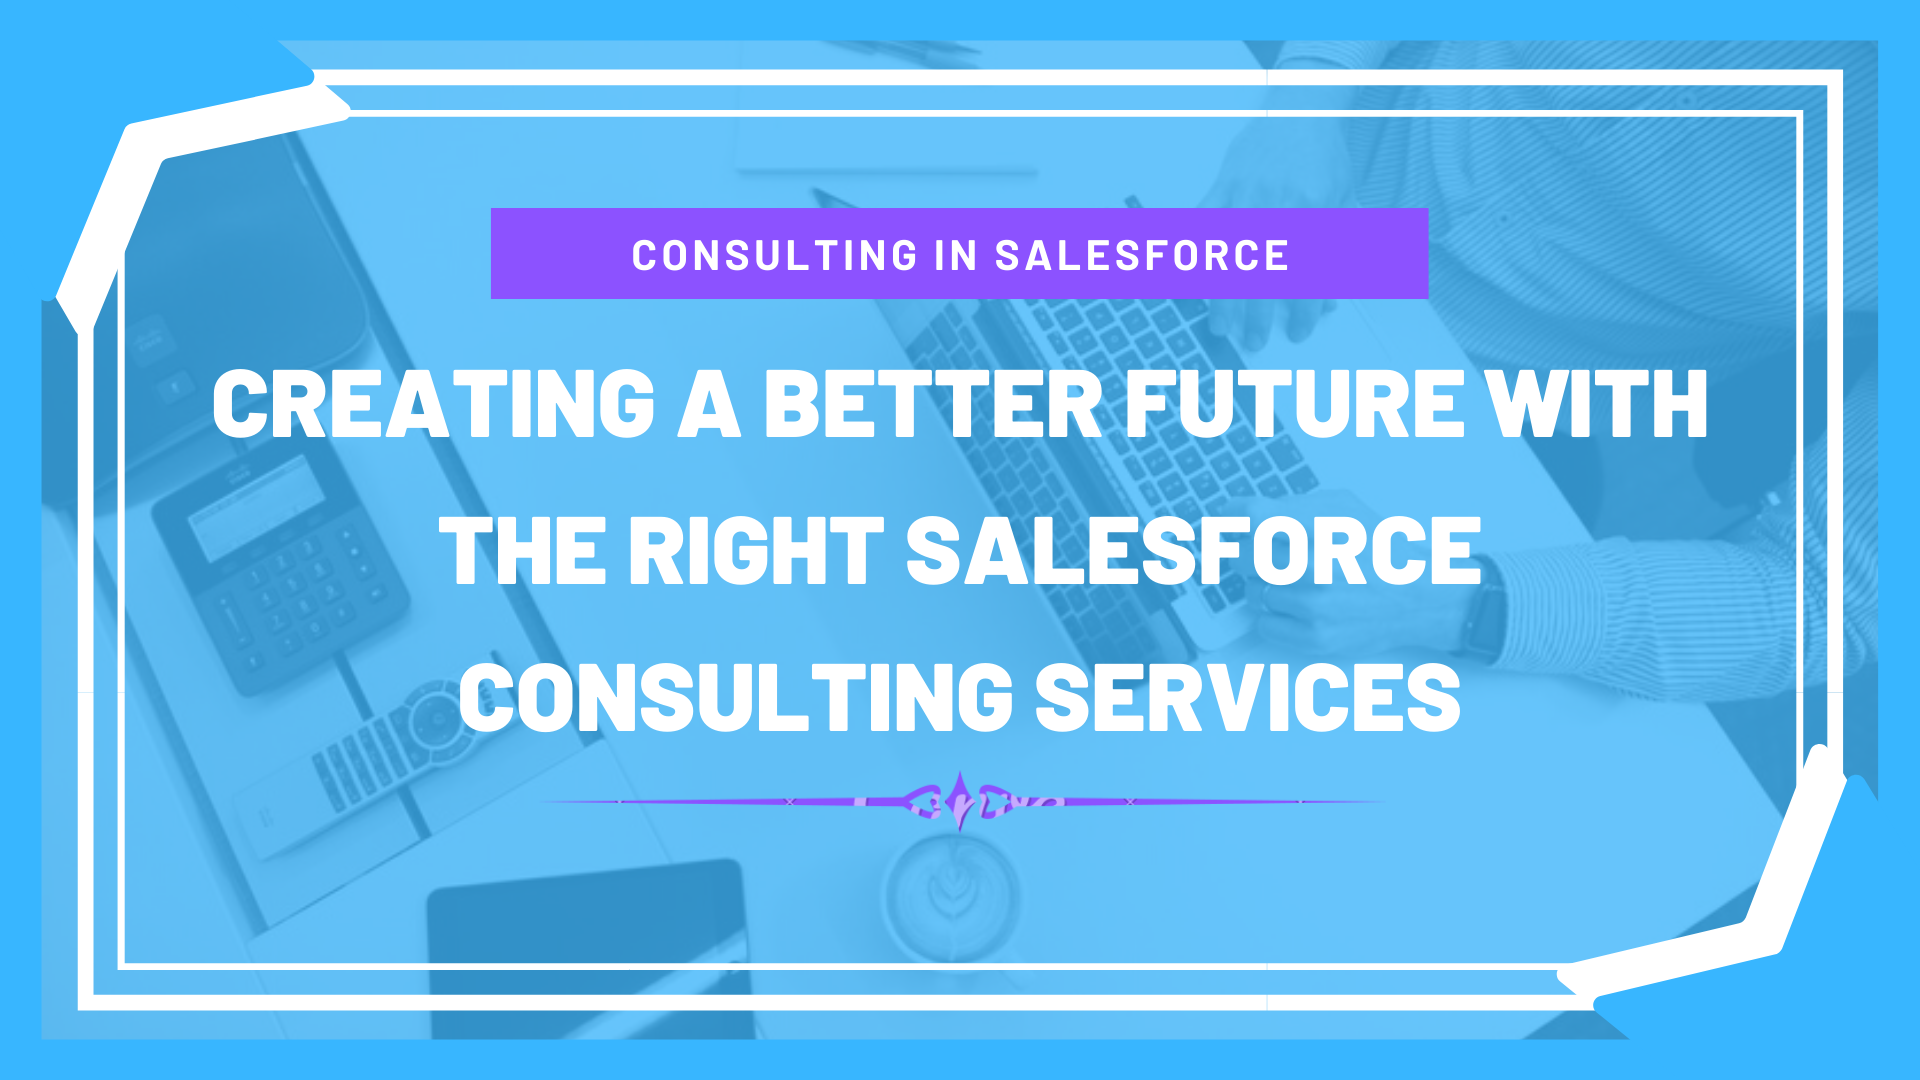 Creating a Better Future with the Right Salesforce Consulting Services